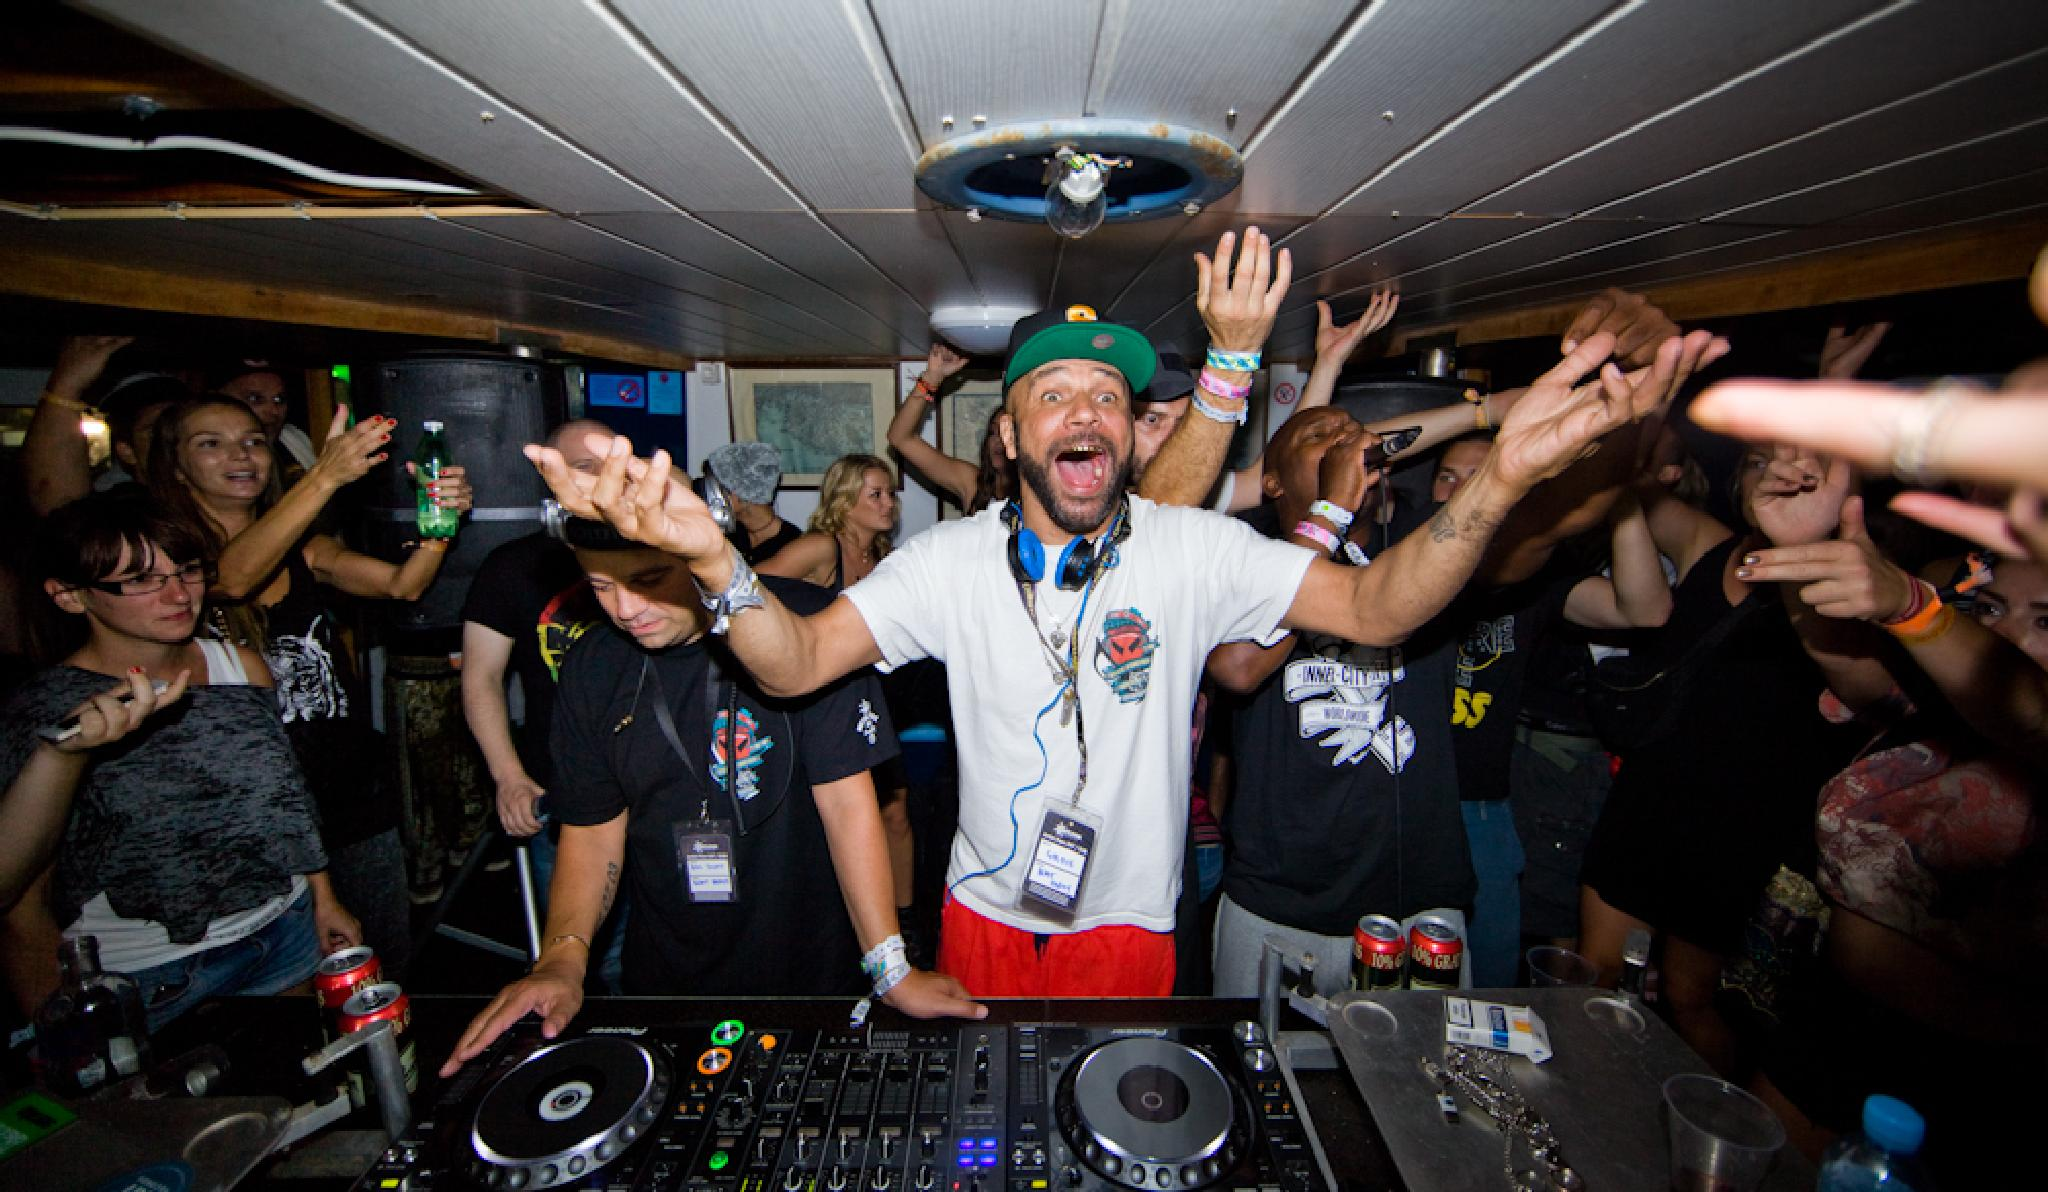 Goldie, Doc Scott & GQ on the Metalheadz Boat party @ Outlook Festival 2014. by TomOne